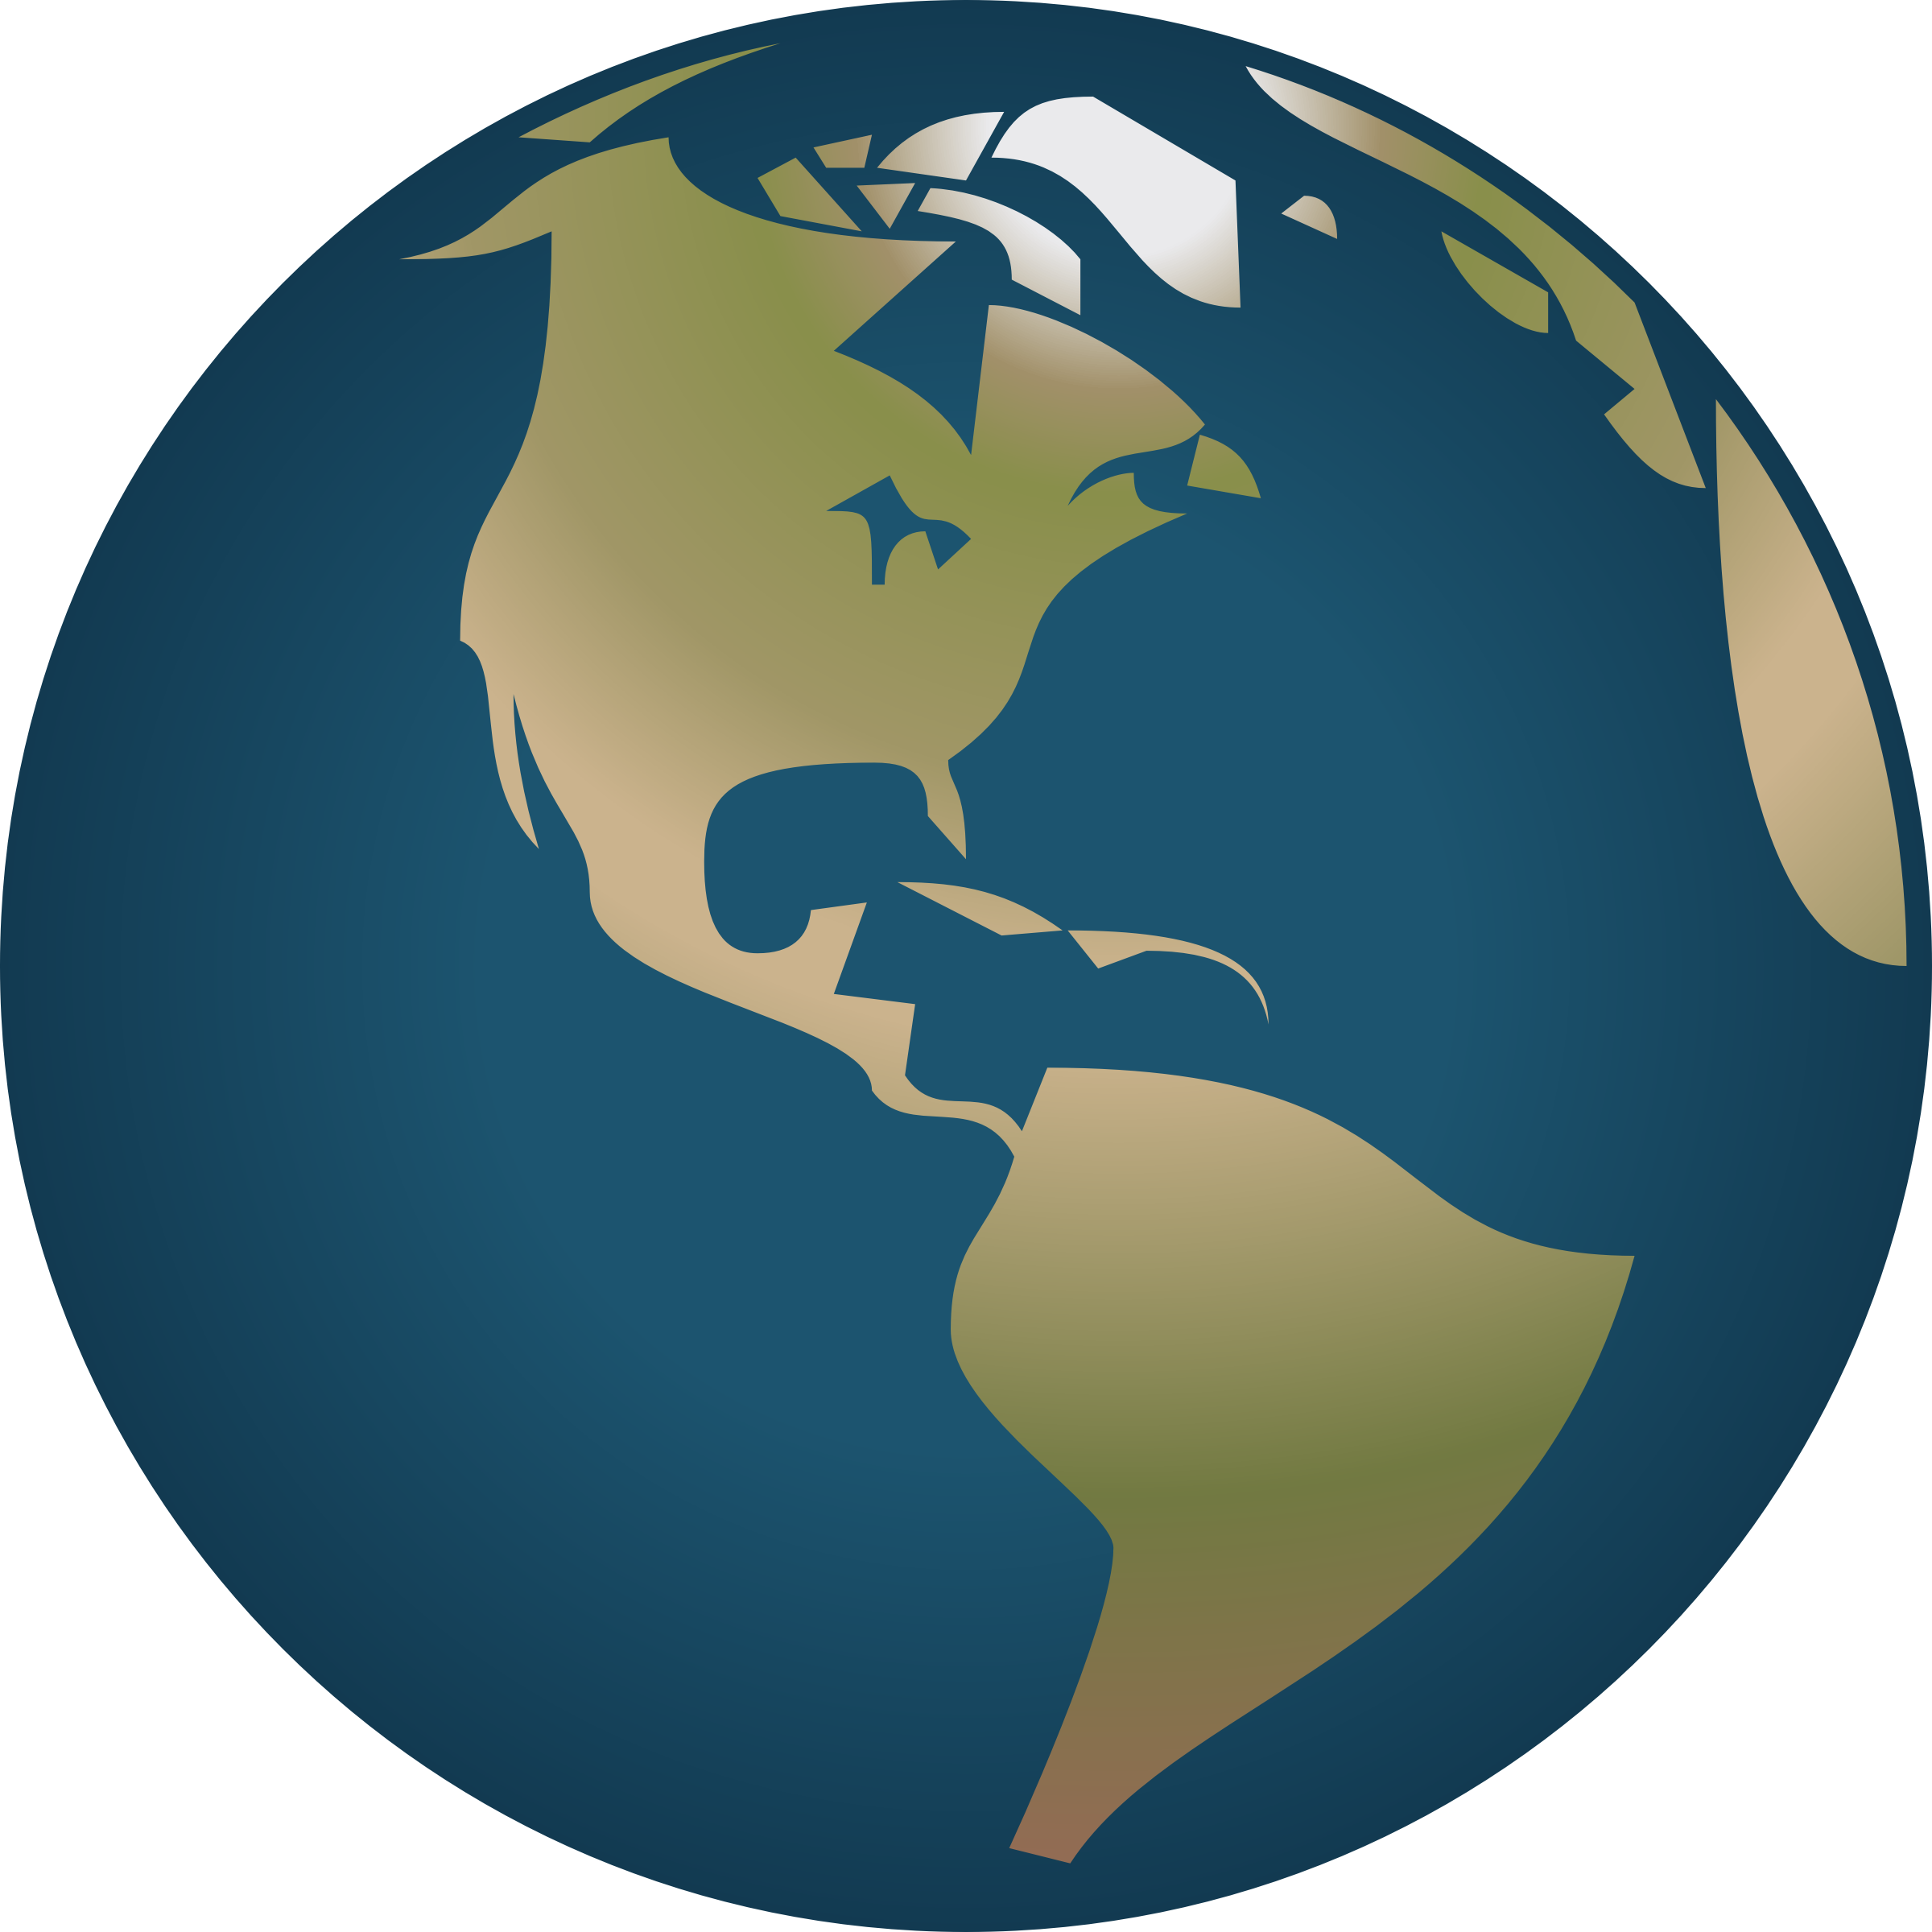 2400x2400 Globe Png Images Free Download